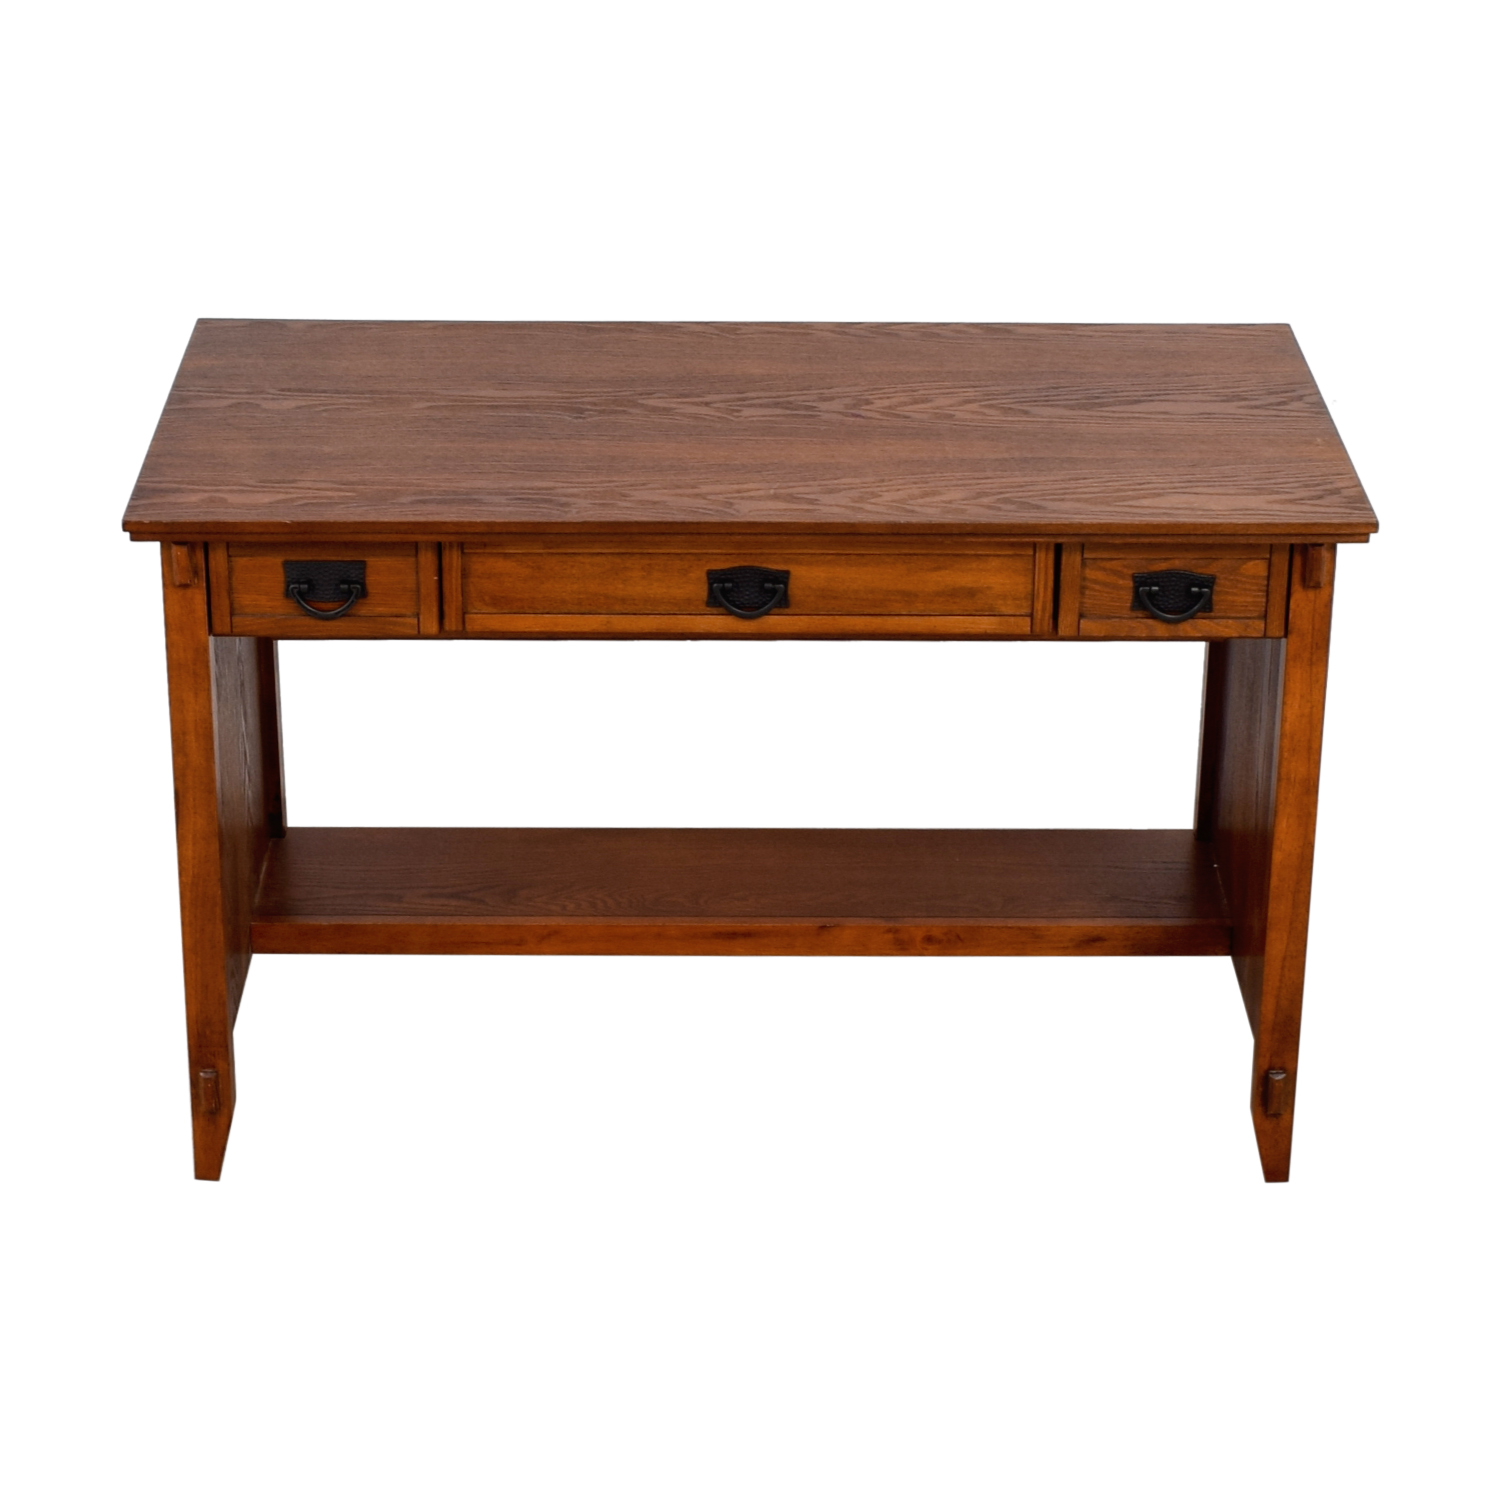 shop  Three-Drawer Wood Mission Desk online